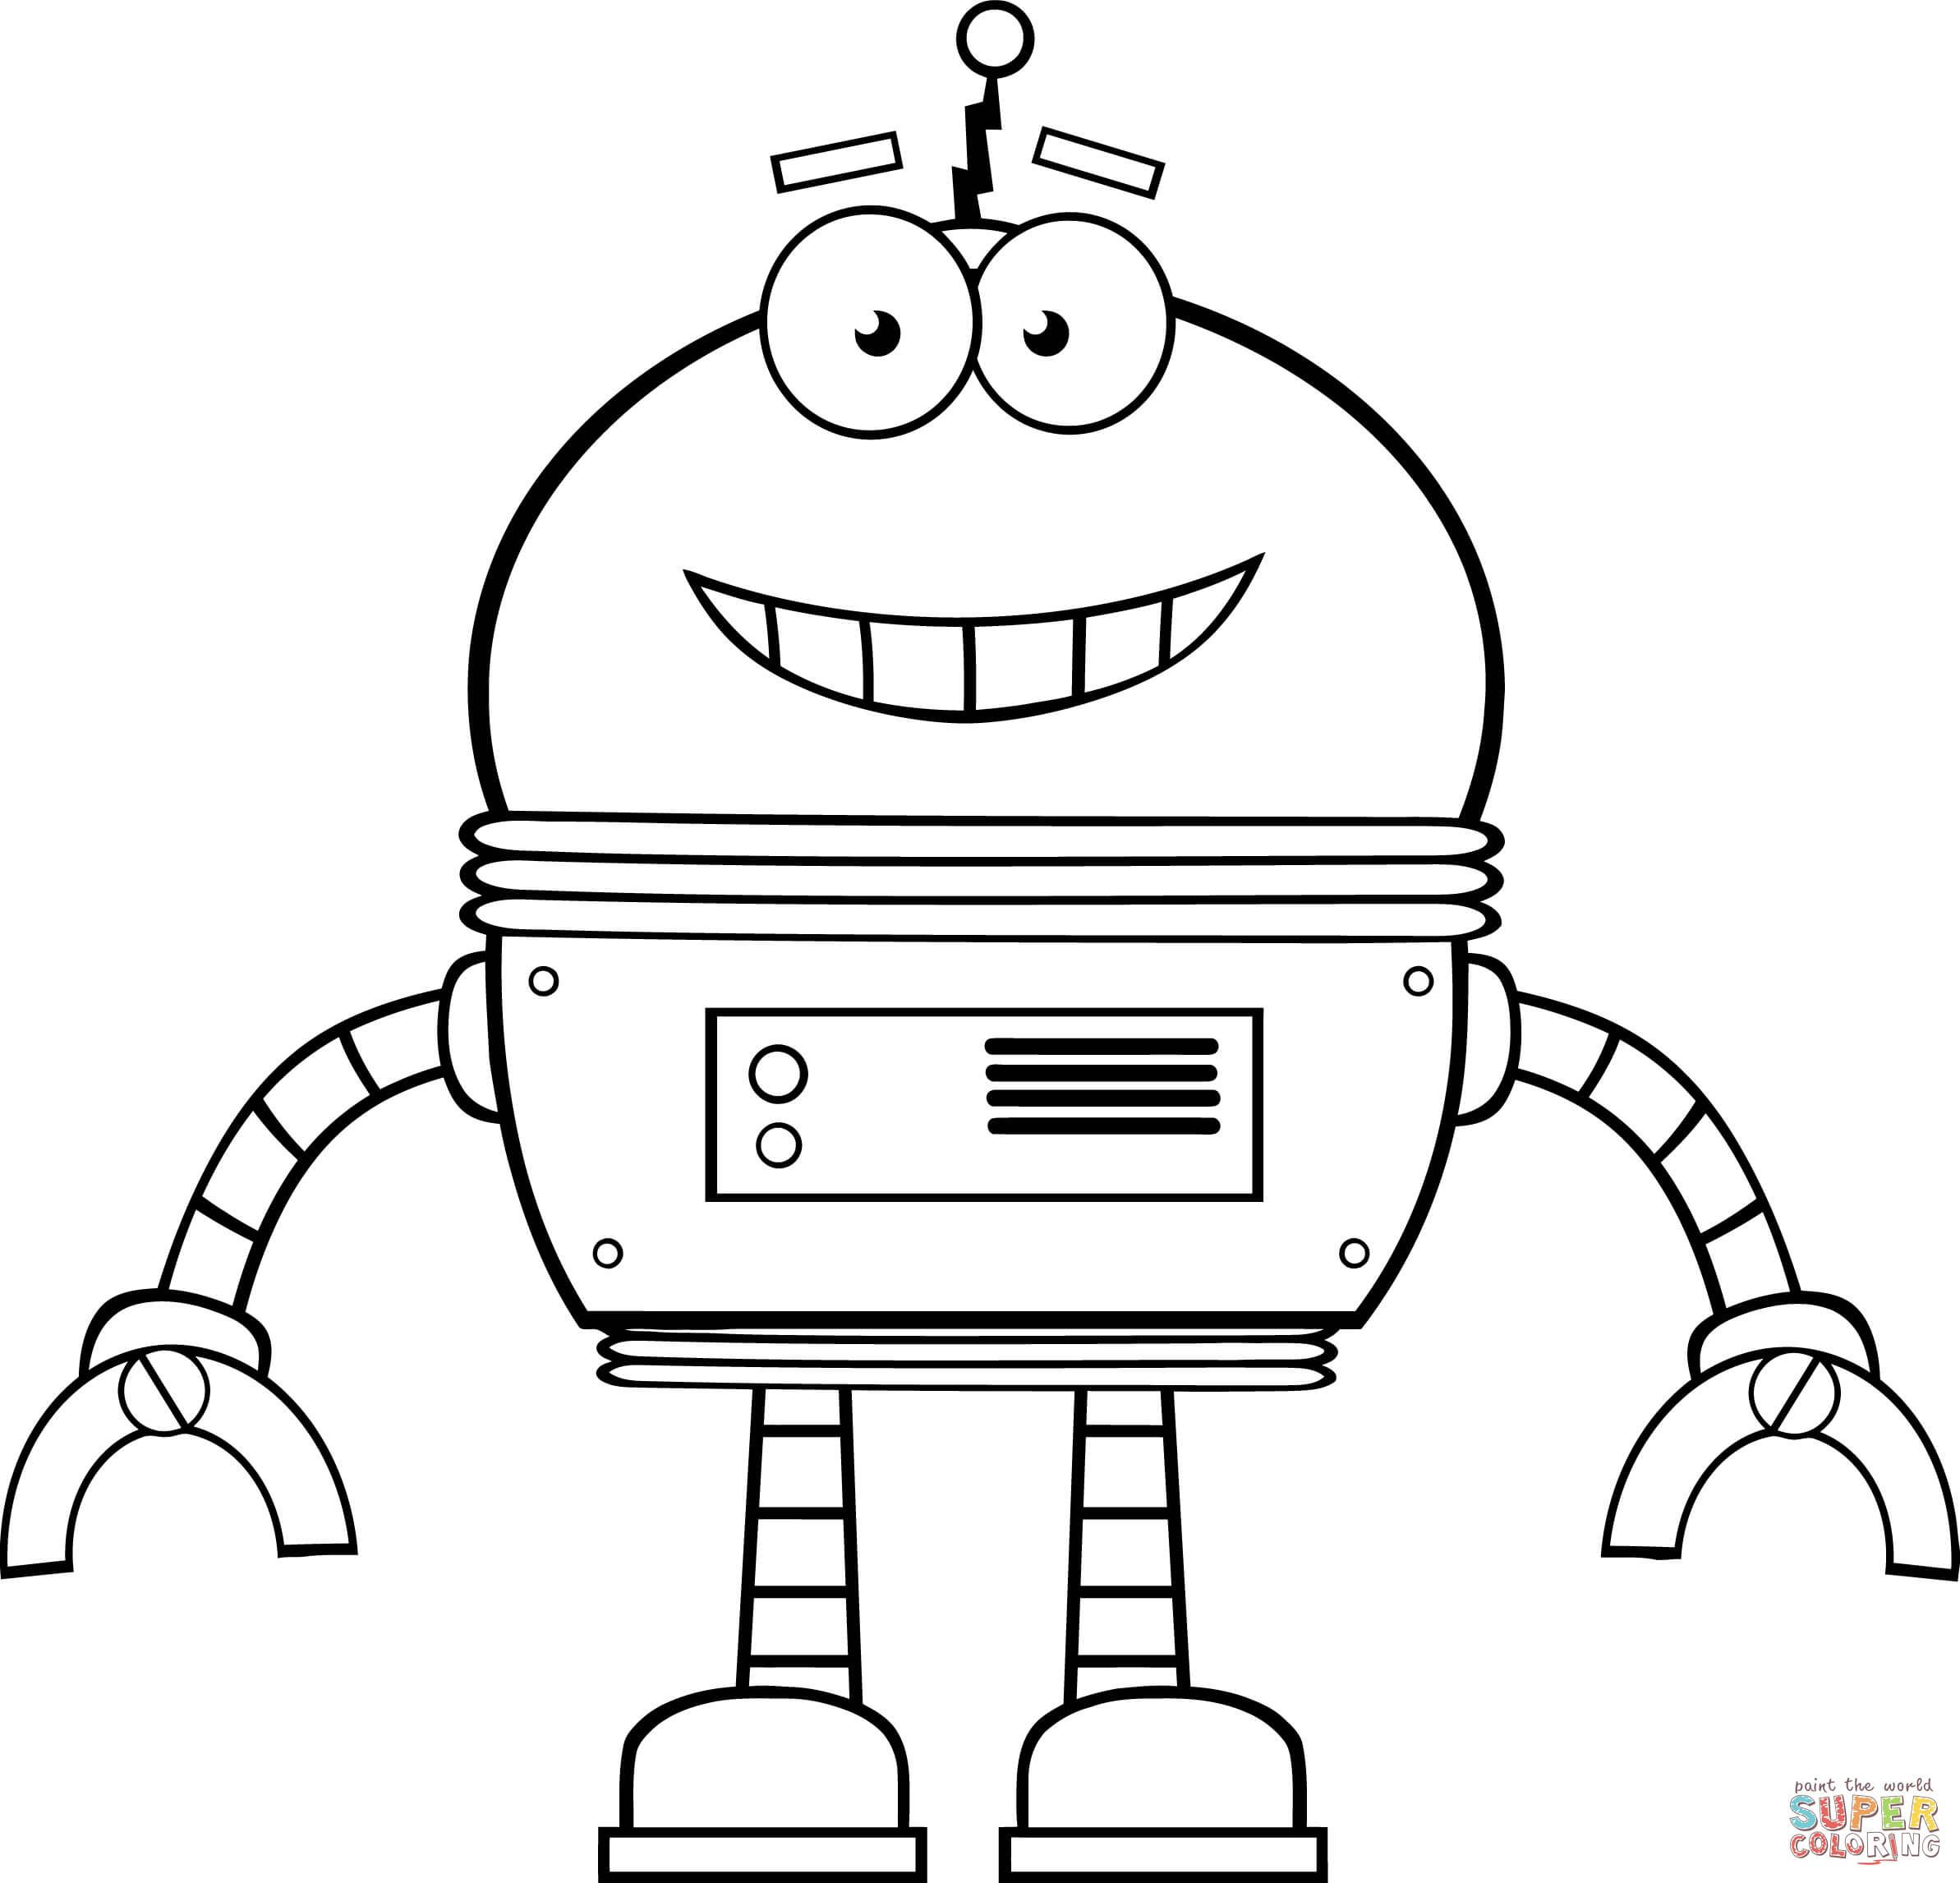 Robots coloring pages | Free Coloring Pages | Free ...